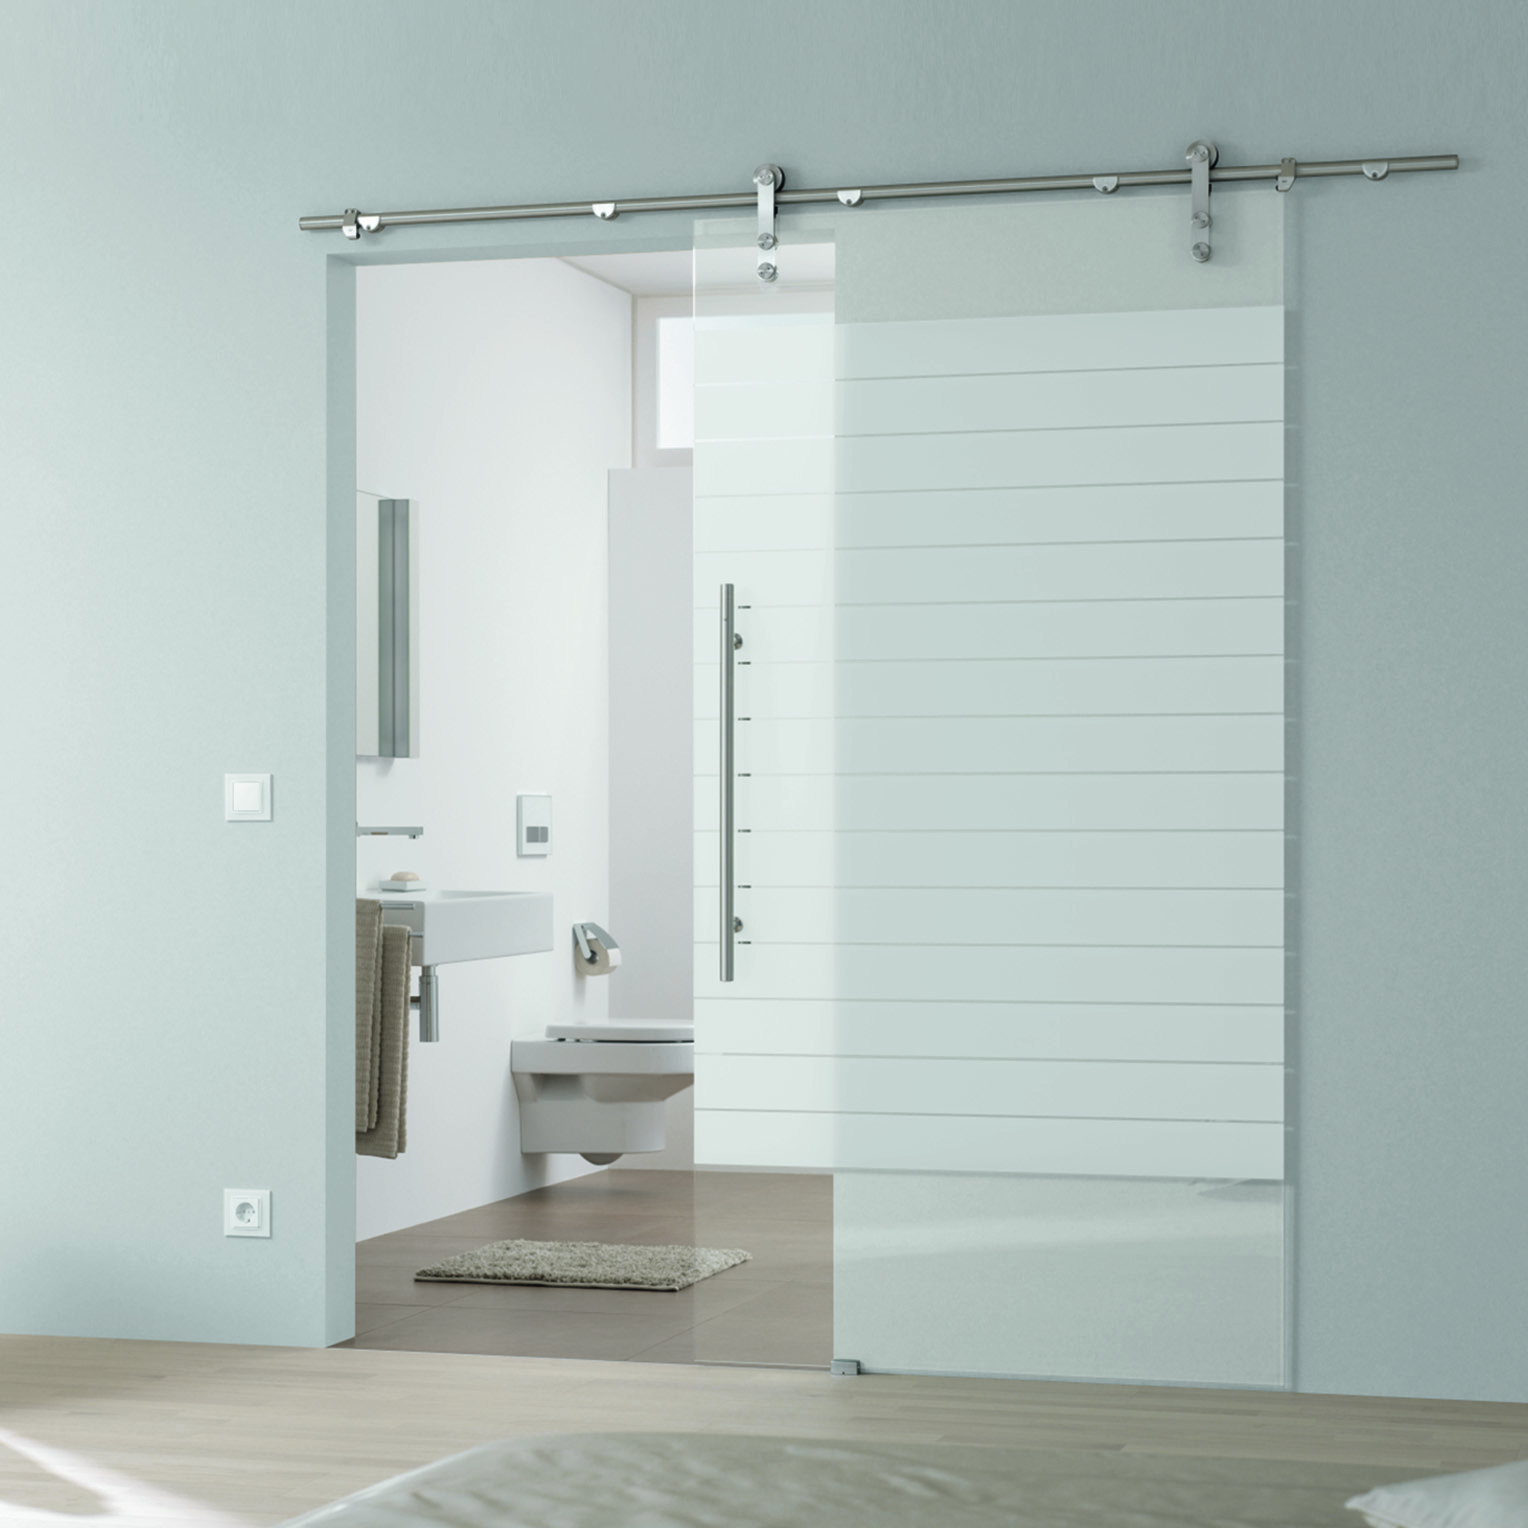 Schiebetür Dorma Dorma Manet Compact And Concept Sliding Door Systems